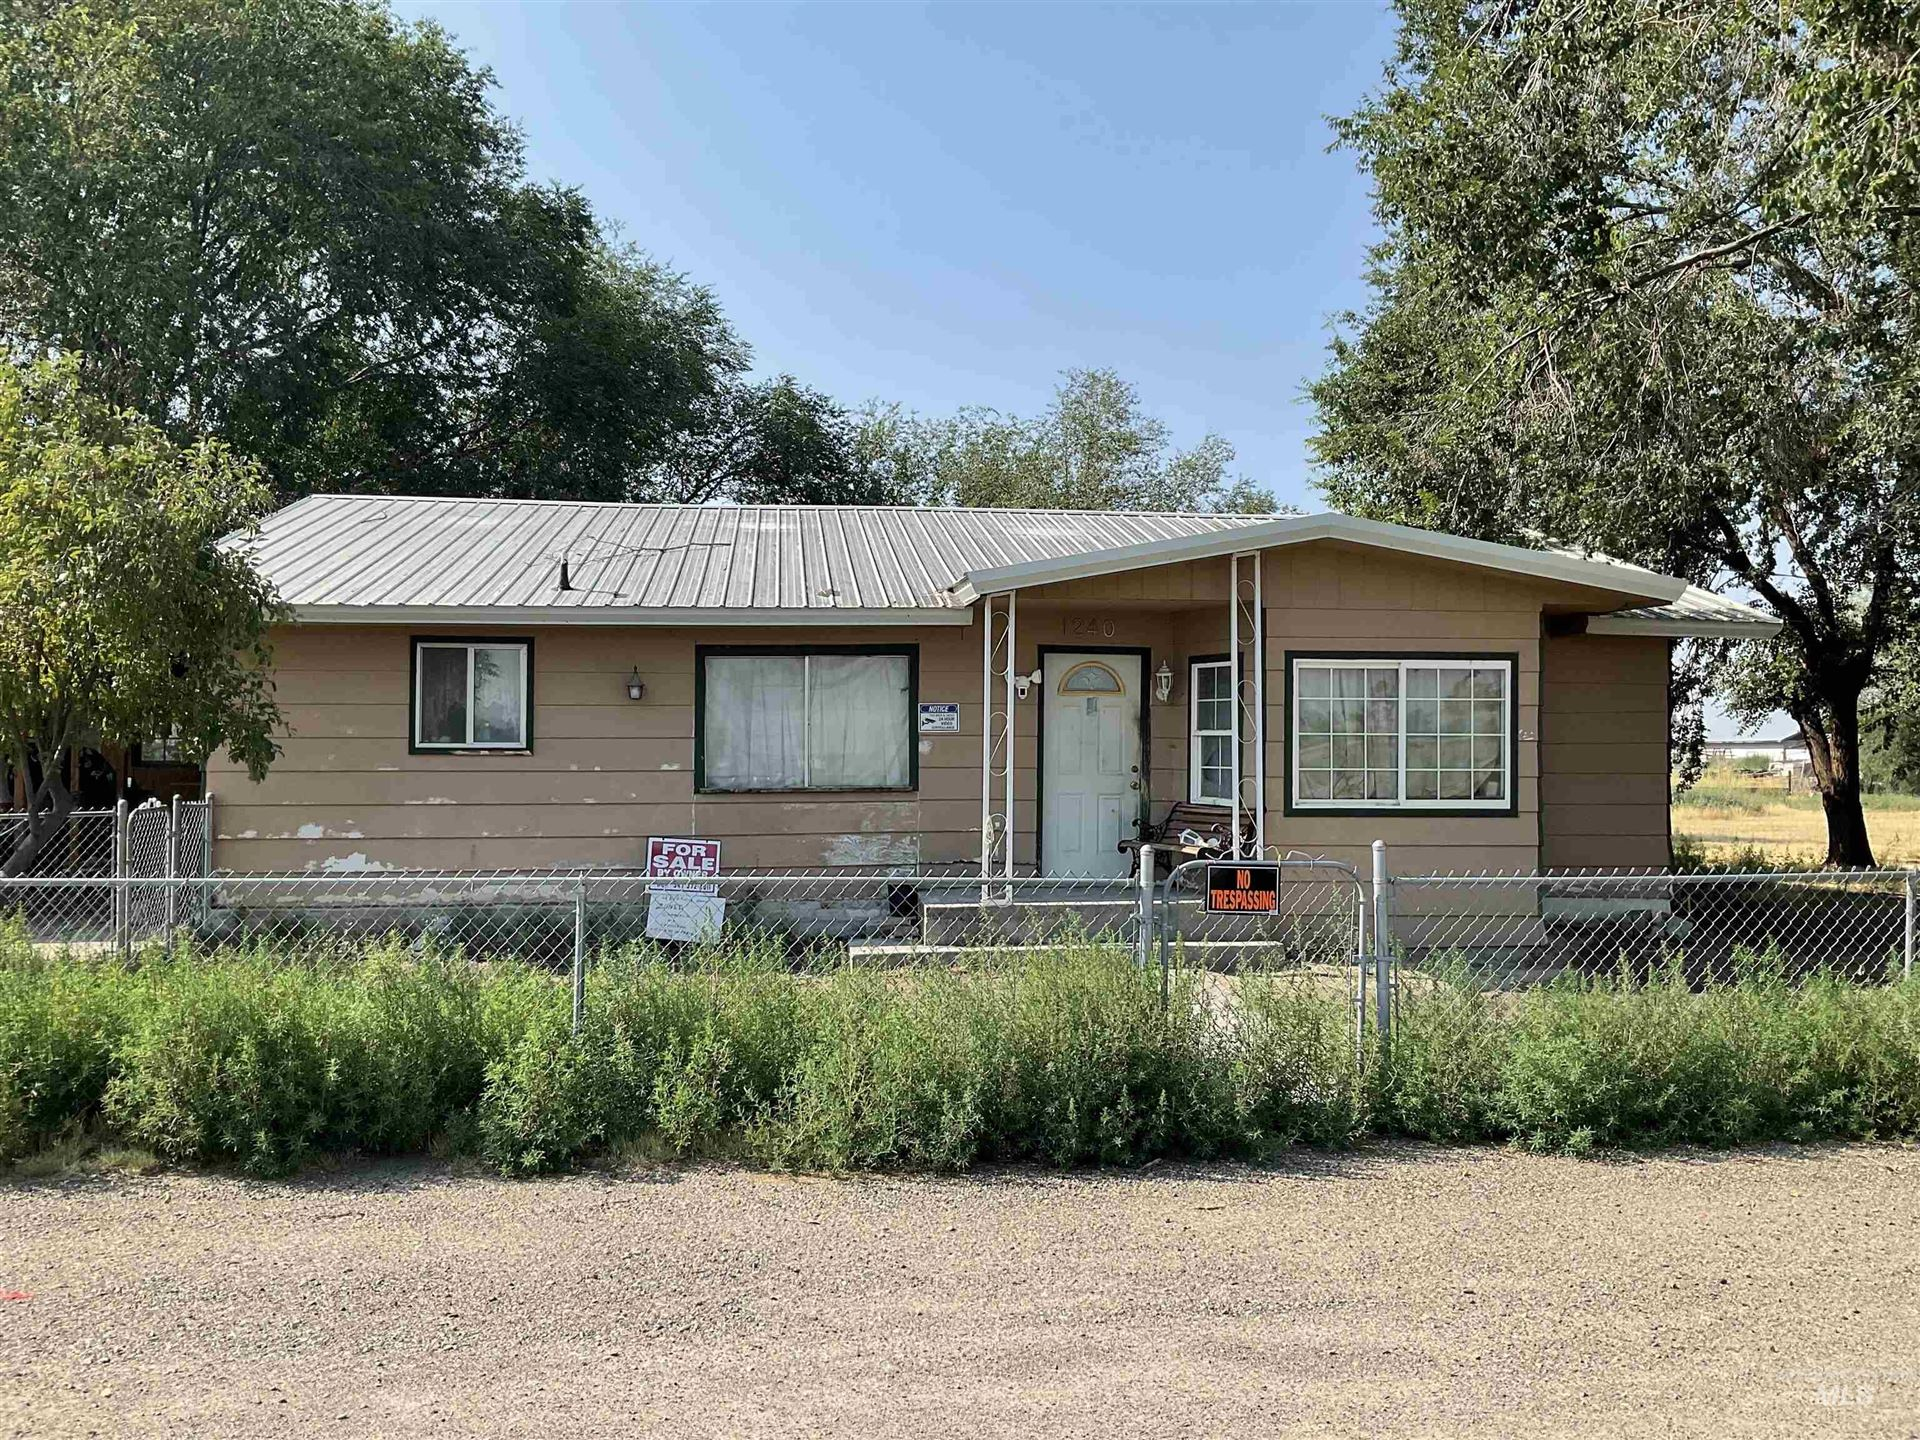 Photo of 1240 NW 22nd, Ontario, OR 97914 (MLS # 98818635)